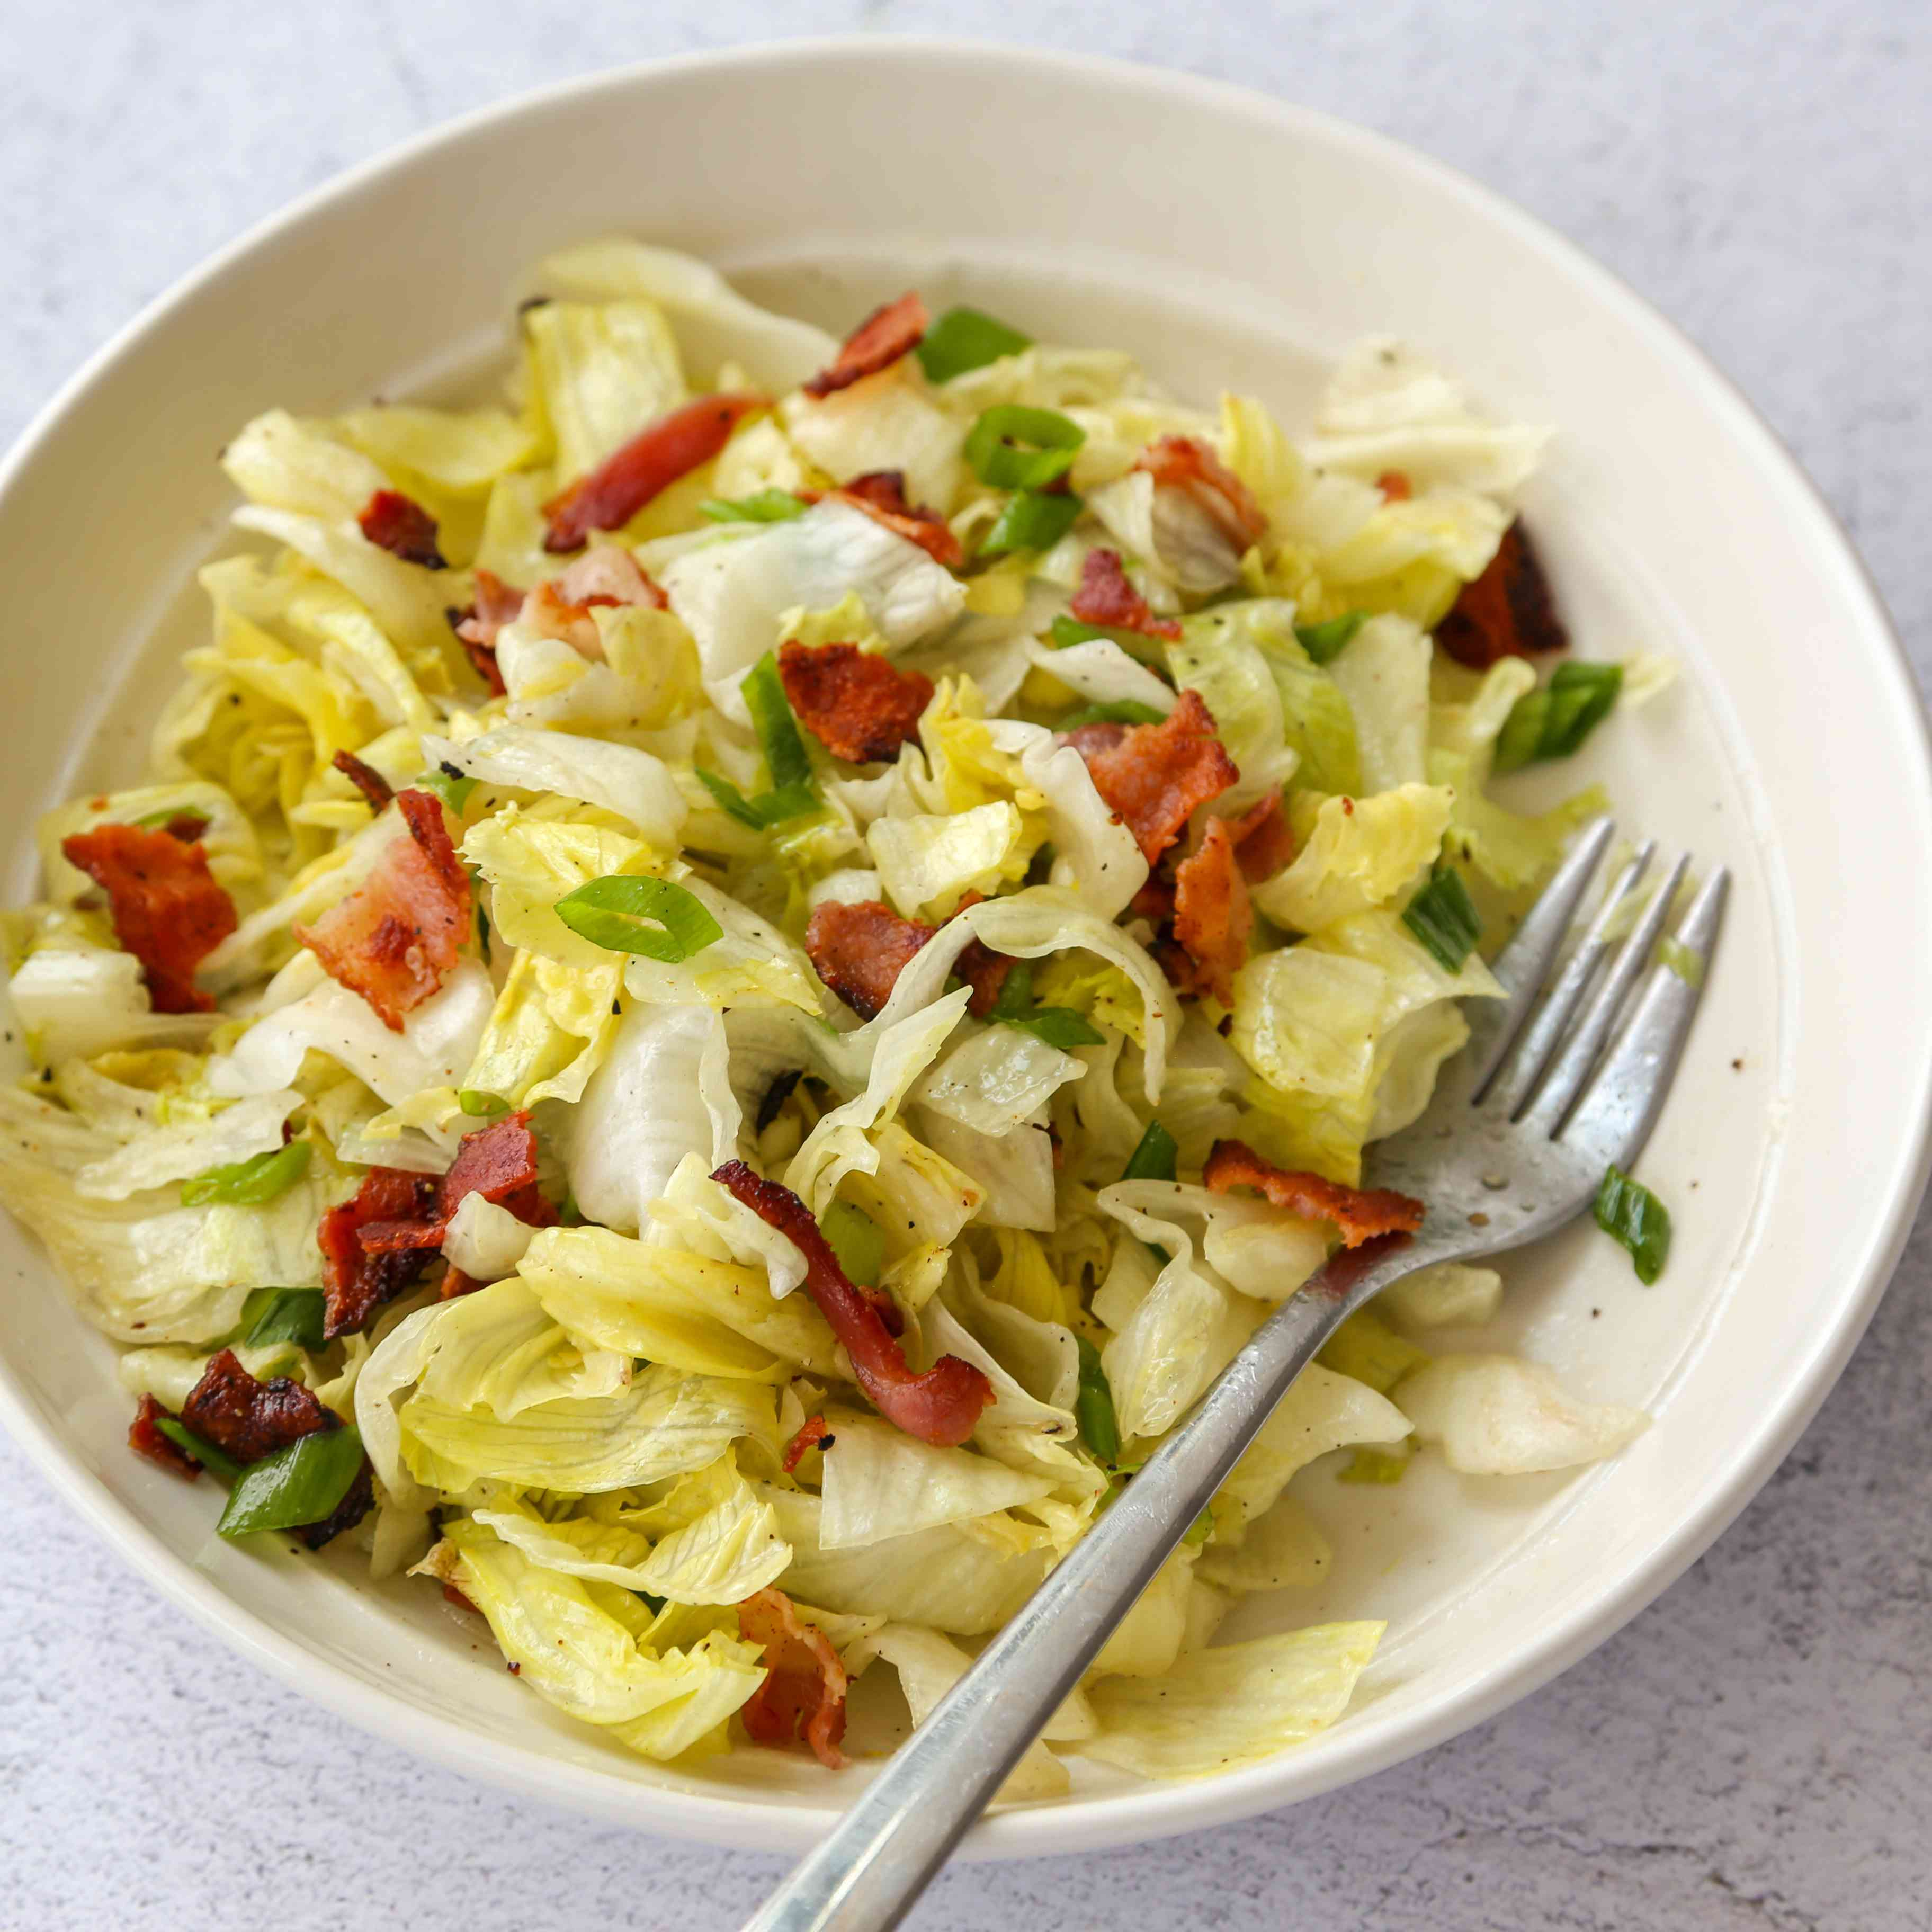 Southern Wilted Lettuce Salad With Hot Bacon Dressing